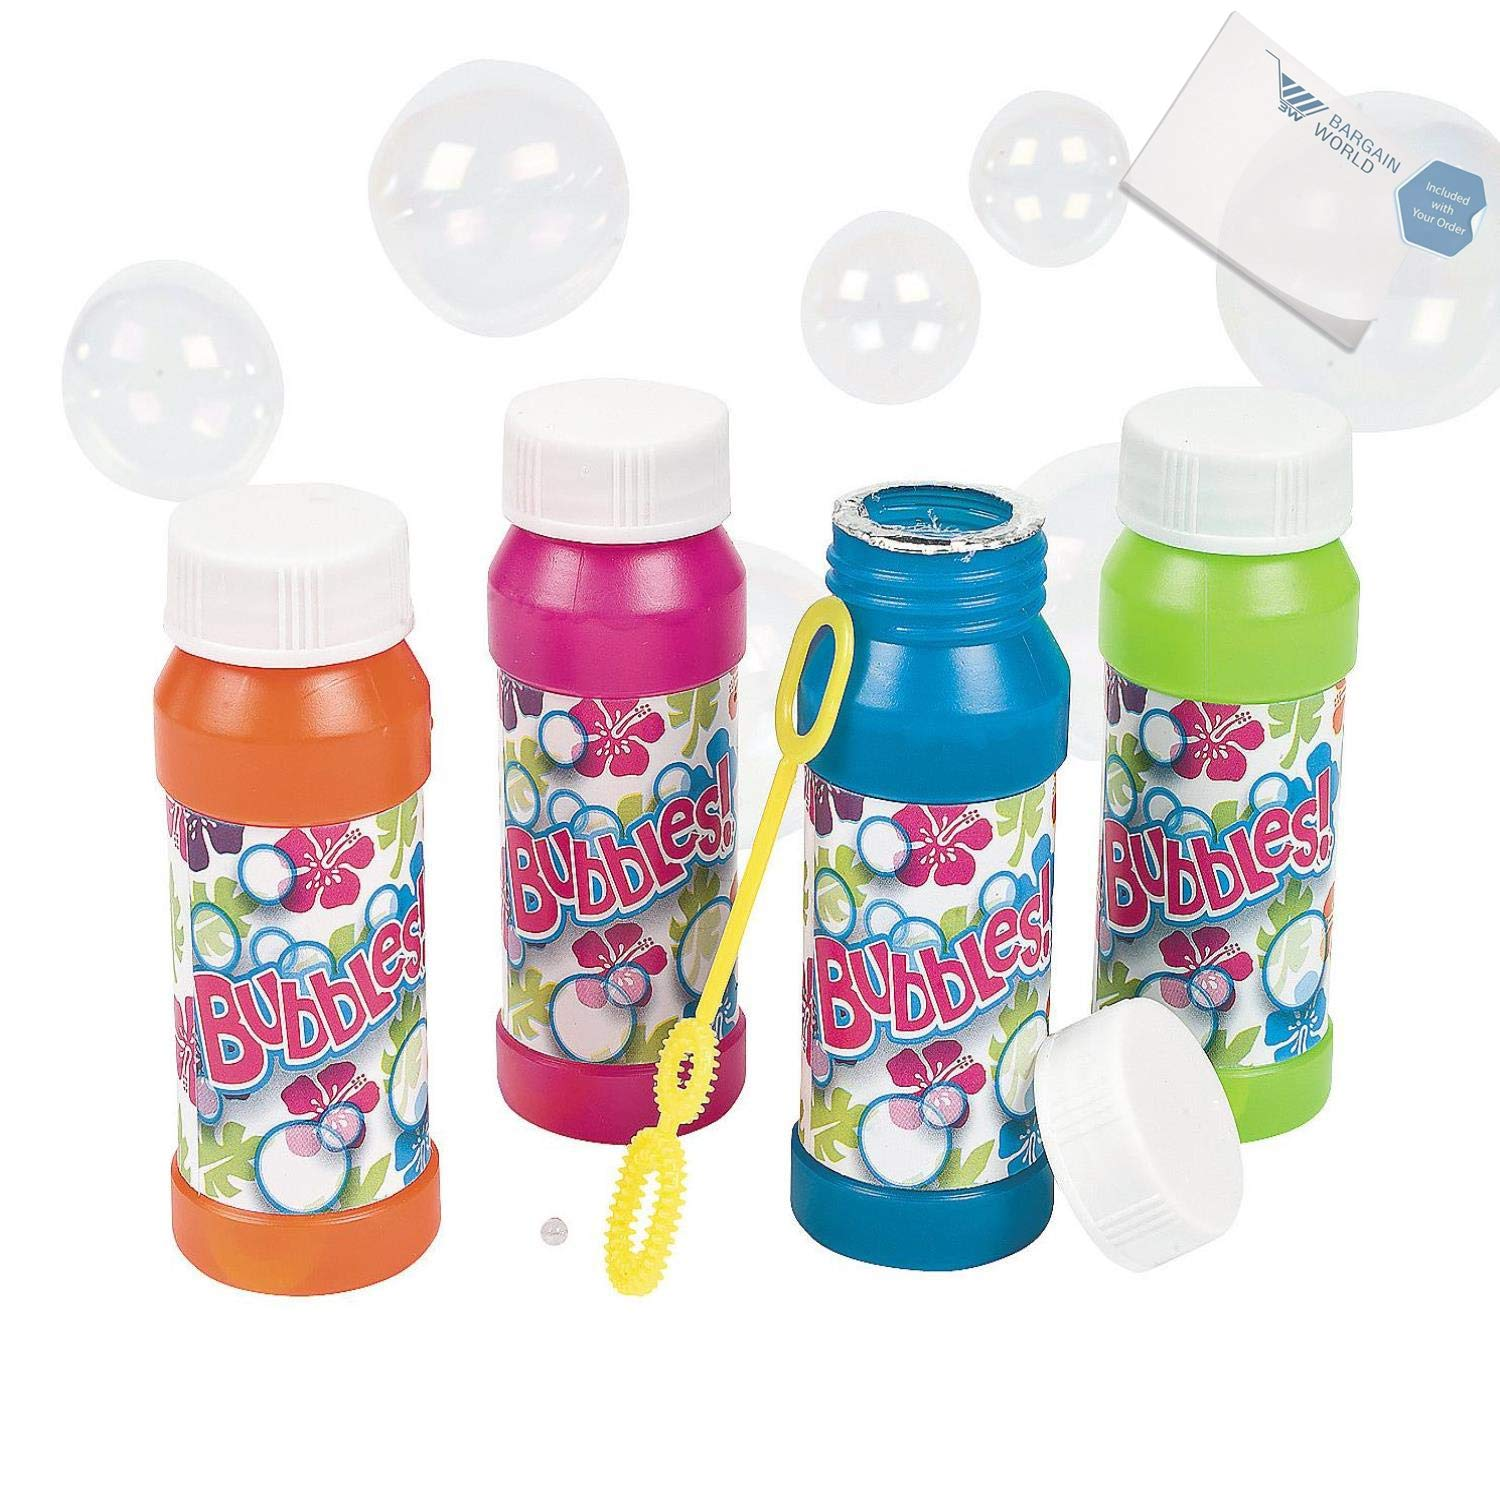 Bargain World Plastic Tropical Bubble Bottles (With Sticky Notes) by Bargain World (Image #1)